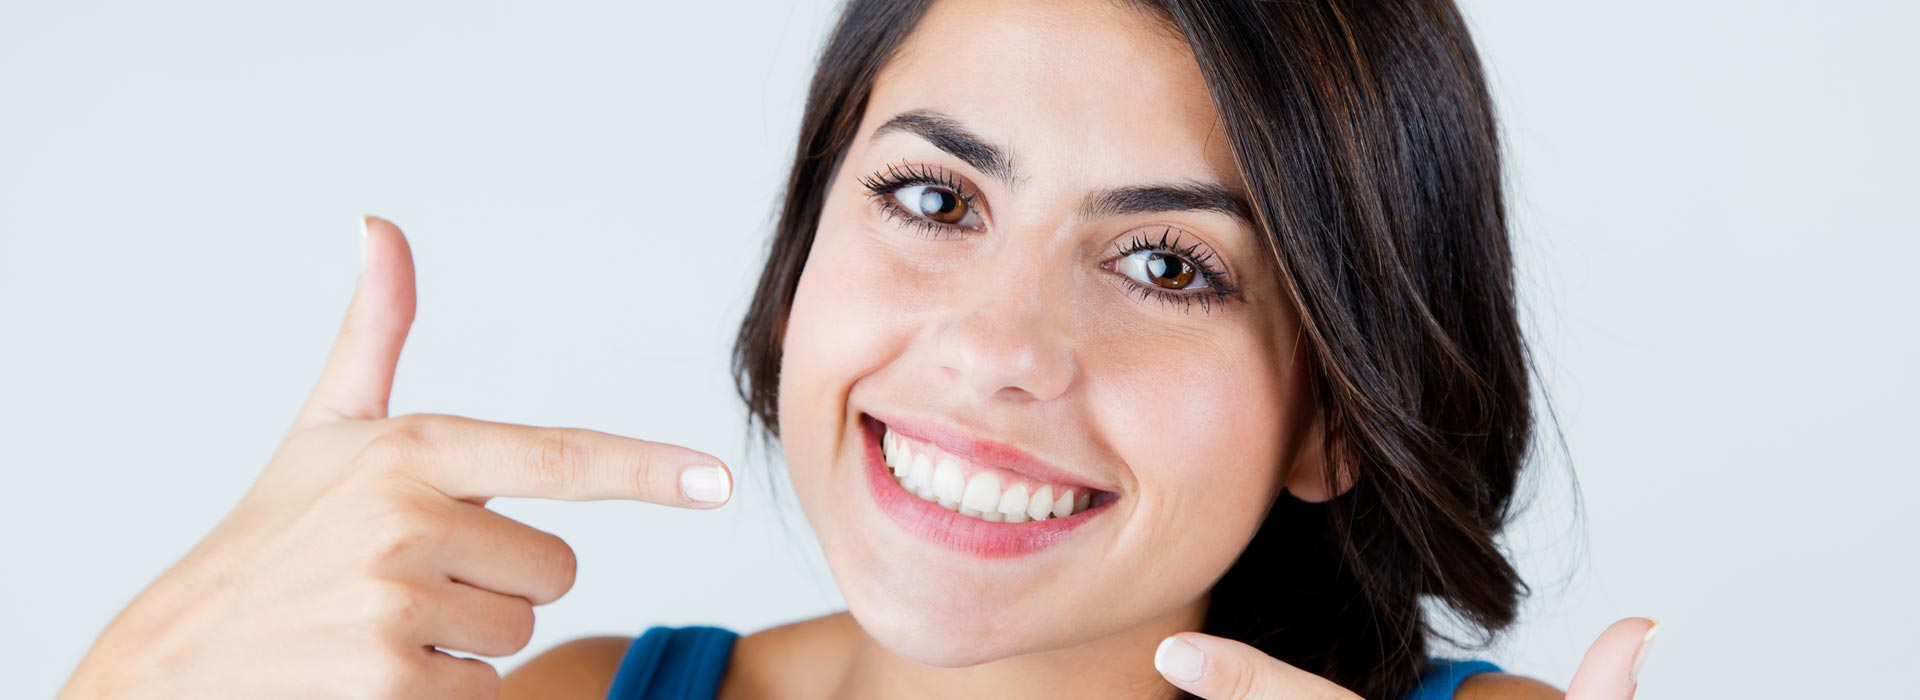 Happy woman after having fluoride treatments